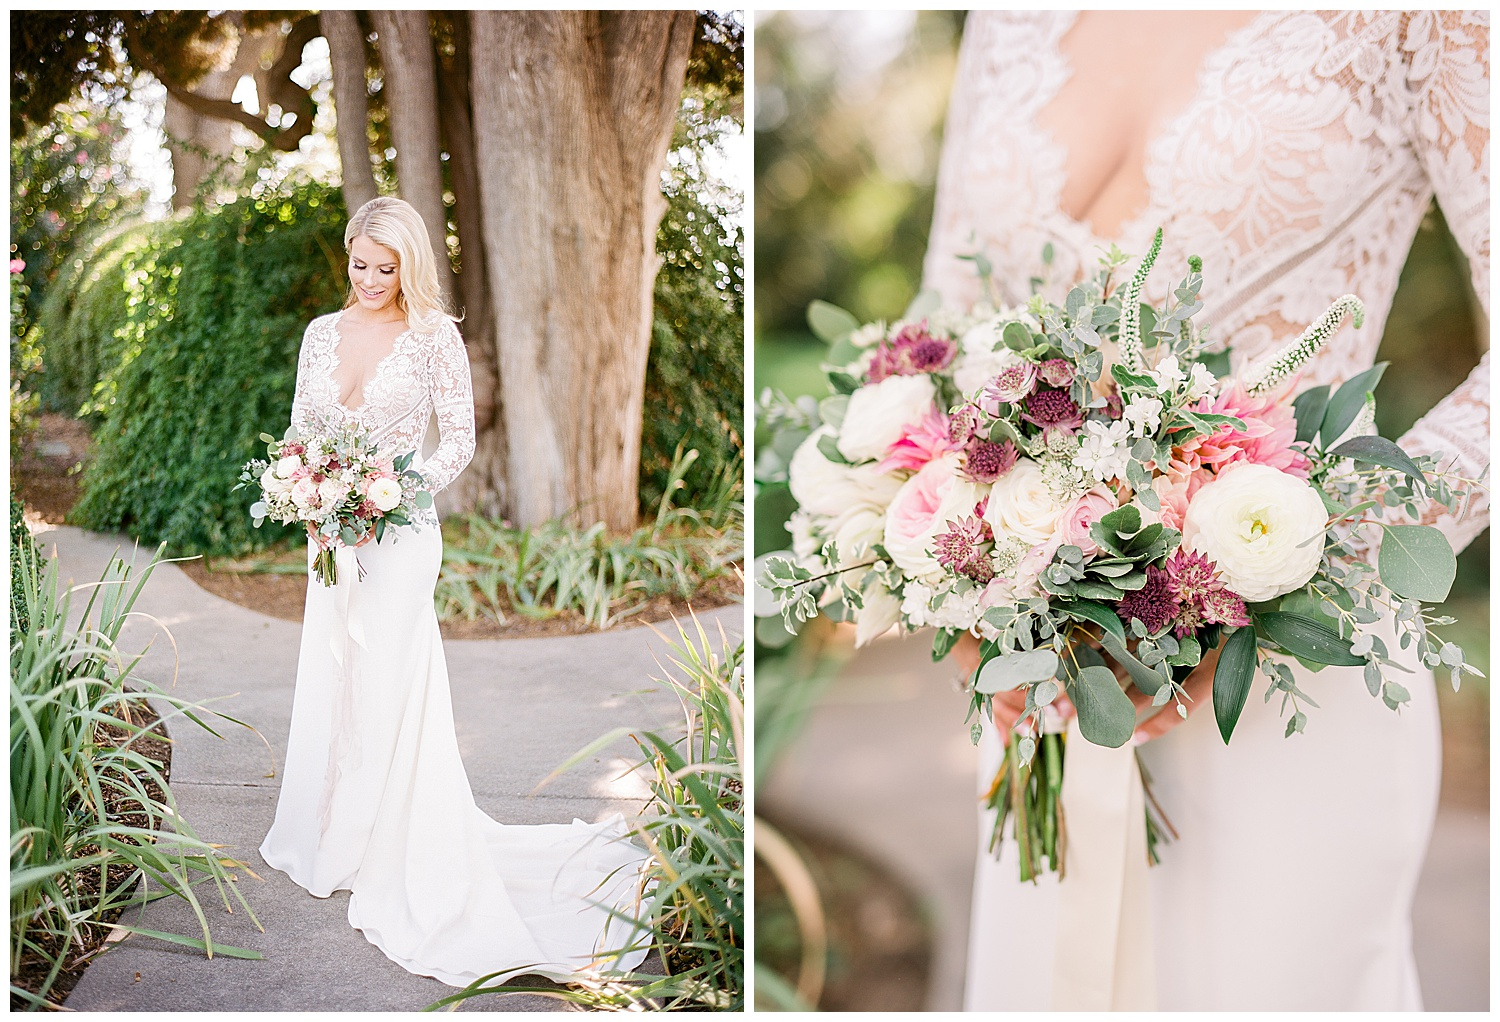 Janine_Licare_Photography_San_Francisco_Wedding_Photographer_Carneros_Tyge_Williams_Sonoma_Napa_0219.jpg